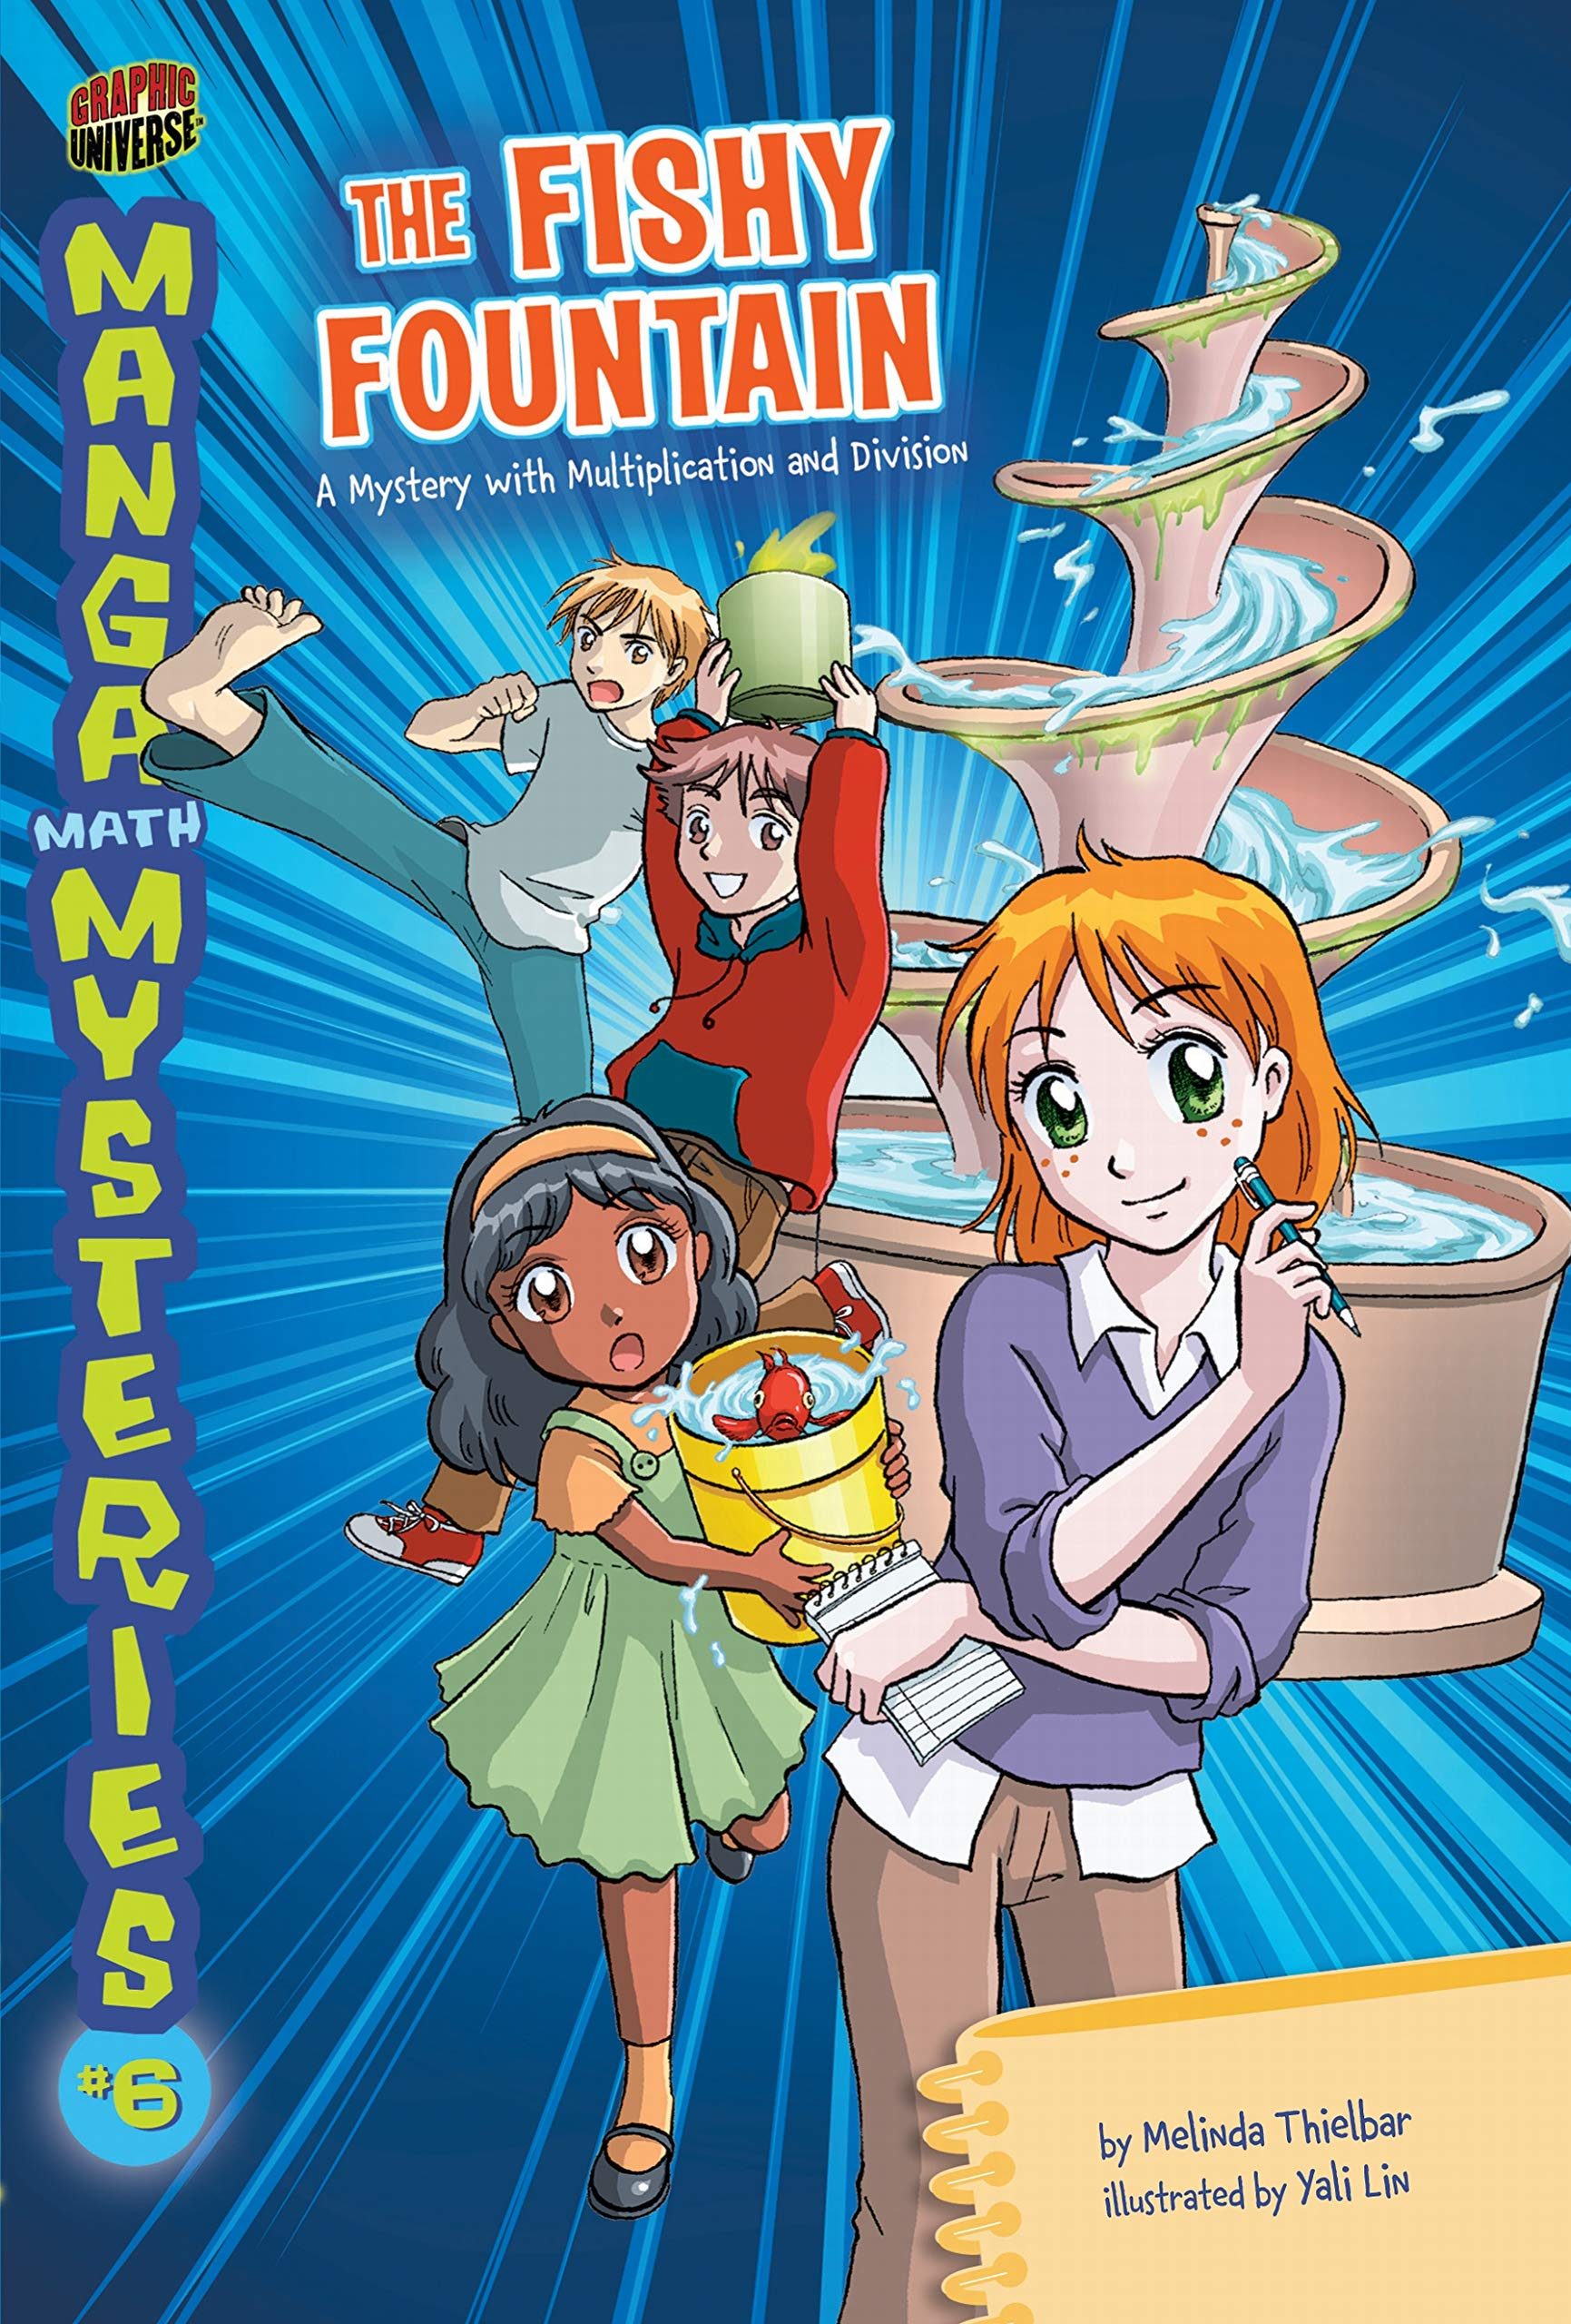 Amazon.com: The Fishy Fountain: A Mystery with Multiplication and ...